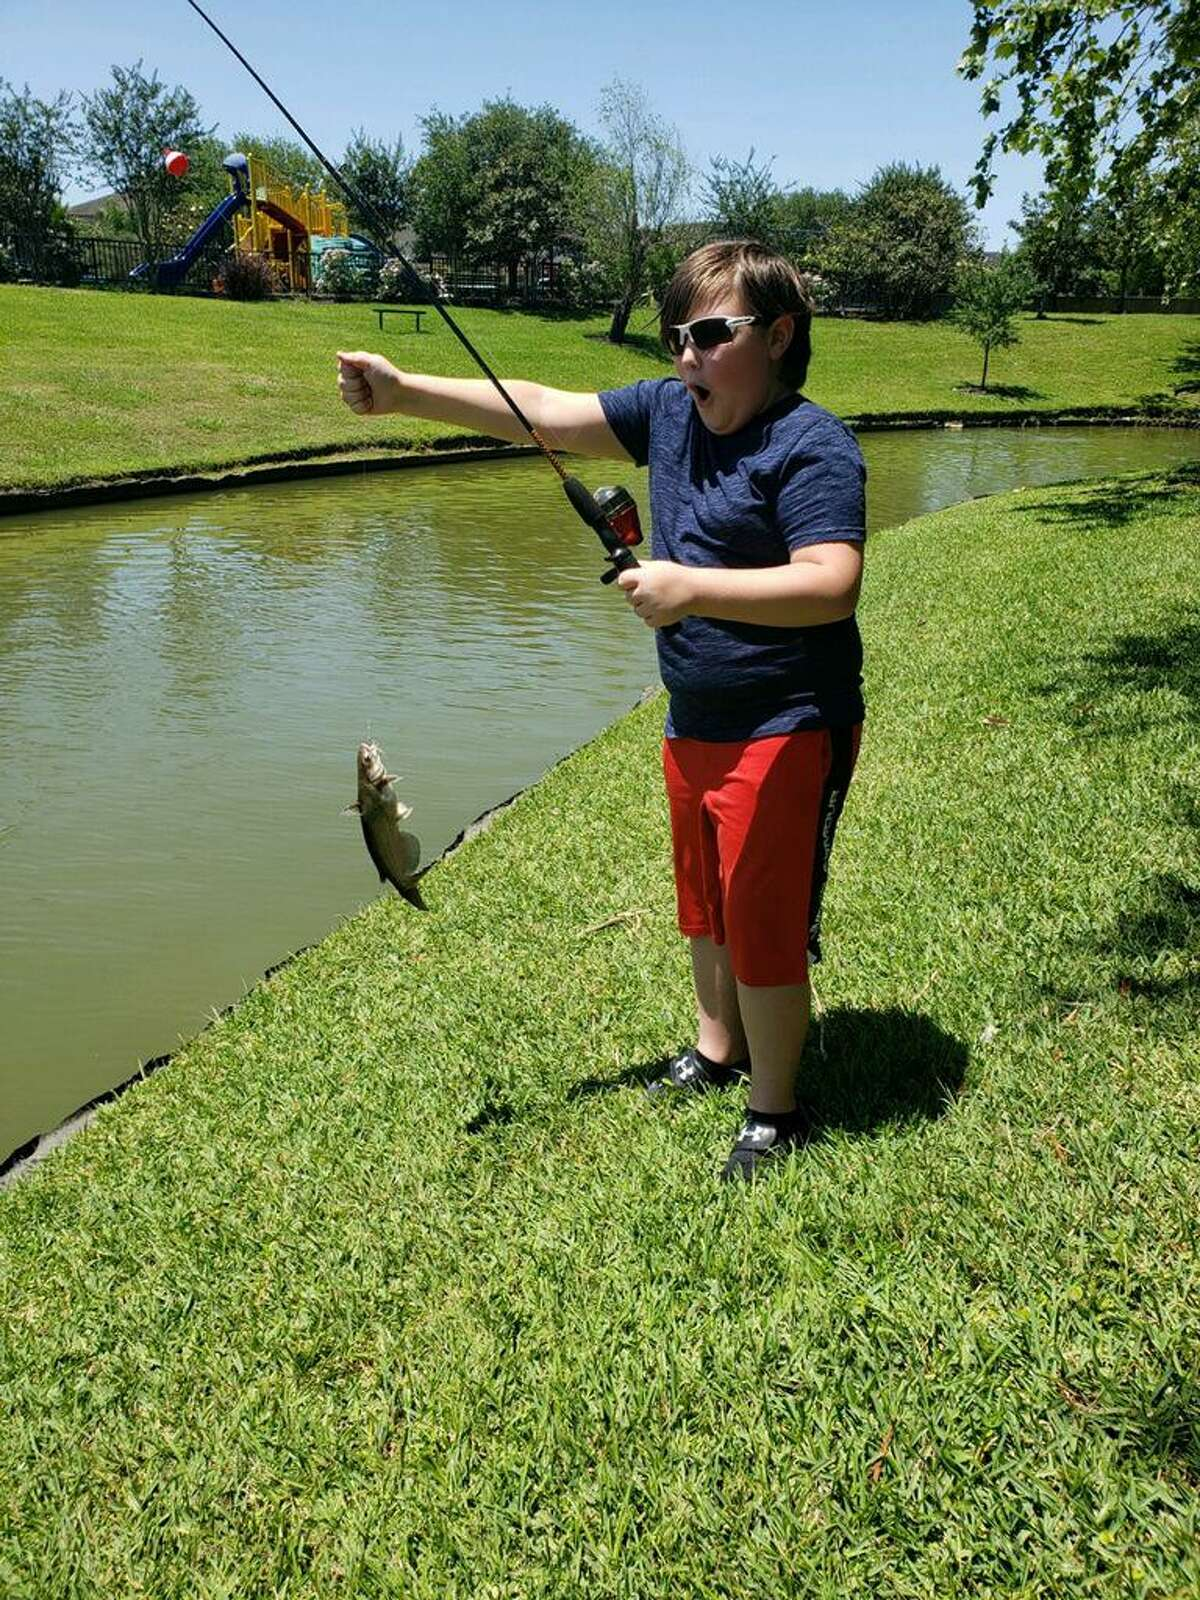 League City's fishing tourney this year will have a major difference from those in the past - it will be virtual. Anglers choose where they wish to fish and post photos of what they catch to vie for awards. Trophies will be given out for the largest speckled trout, catfish and drum.